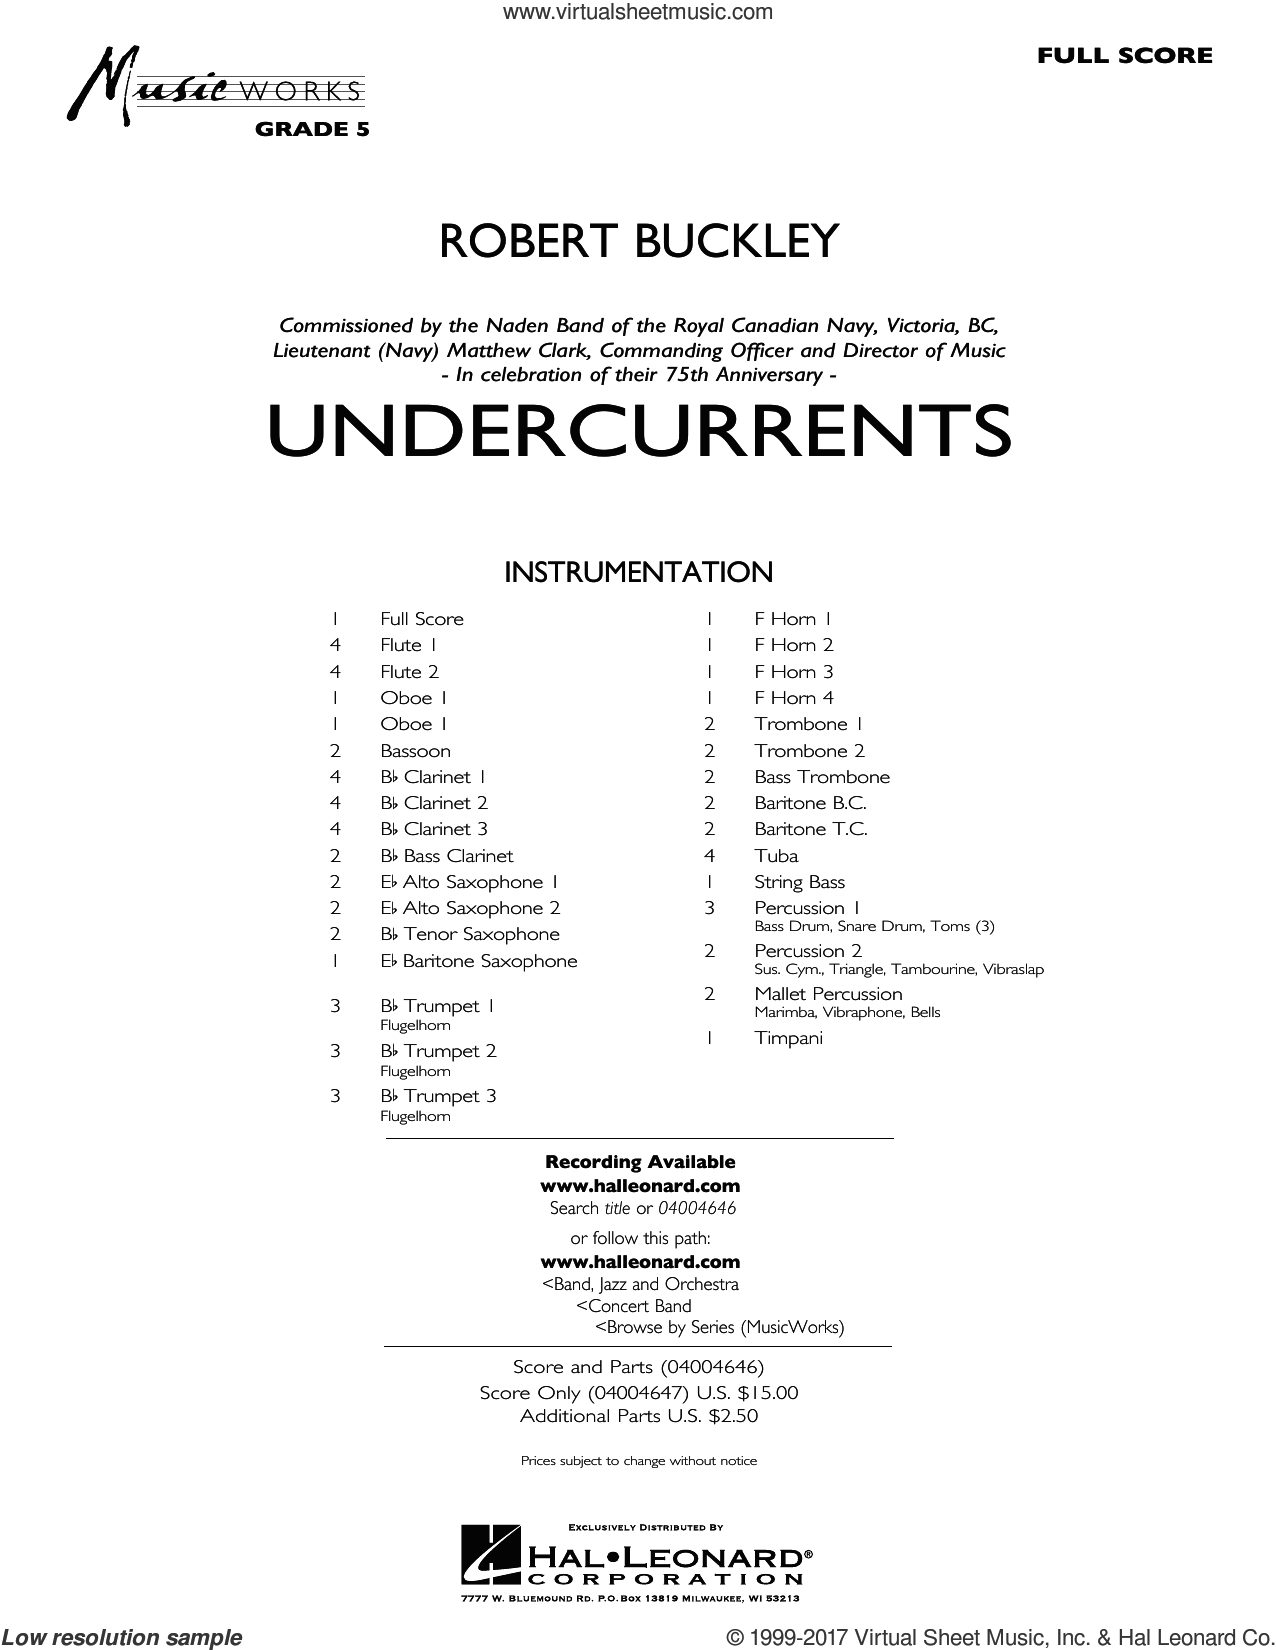 Undercurrents (COMPLETE) sheet music for concert band by Robert Buckley, intermediate skill level